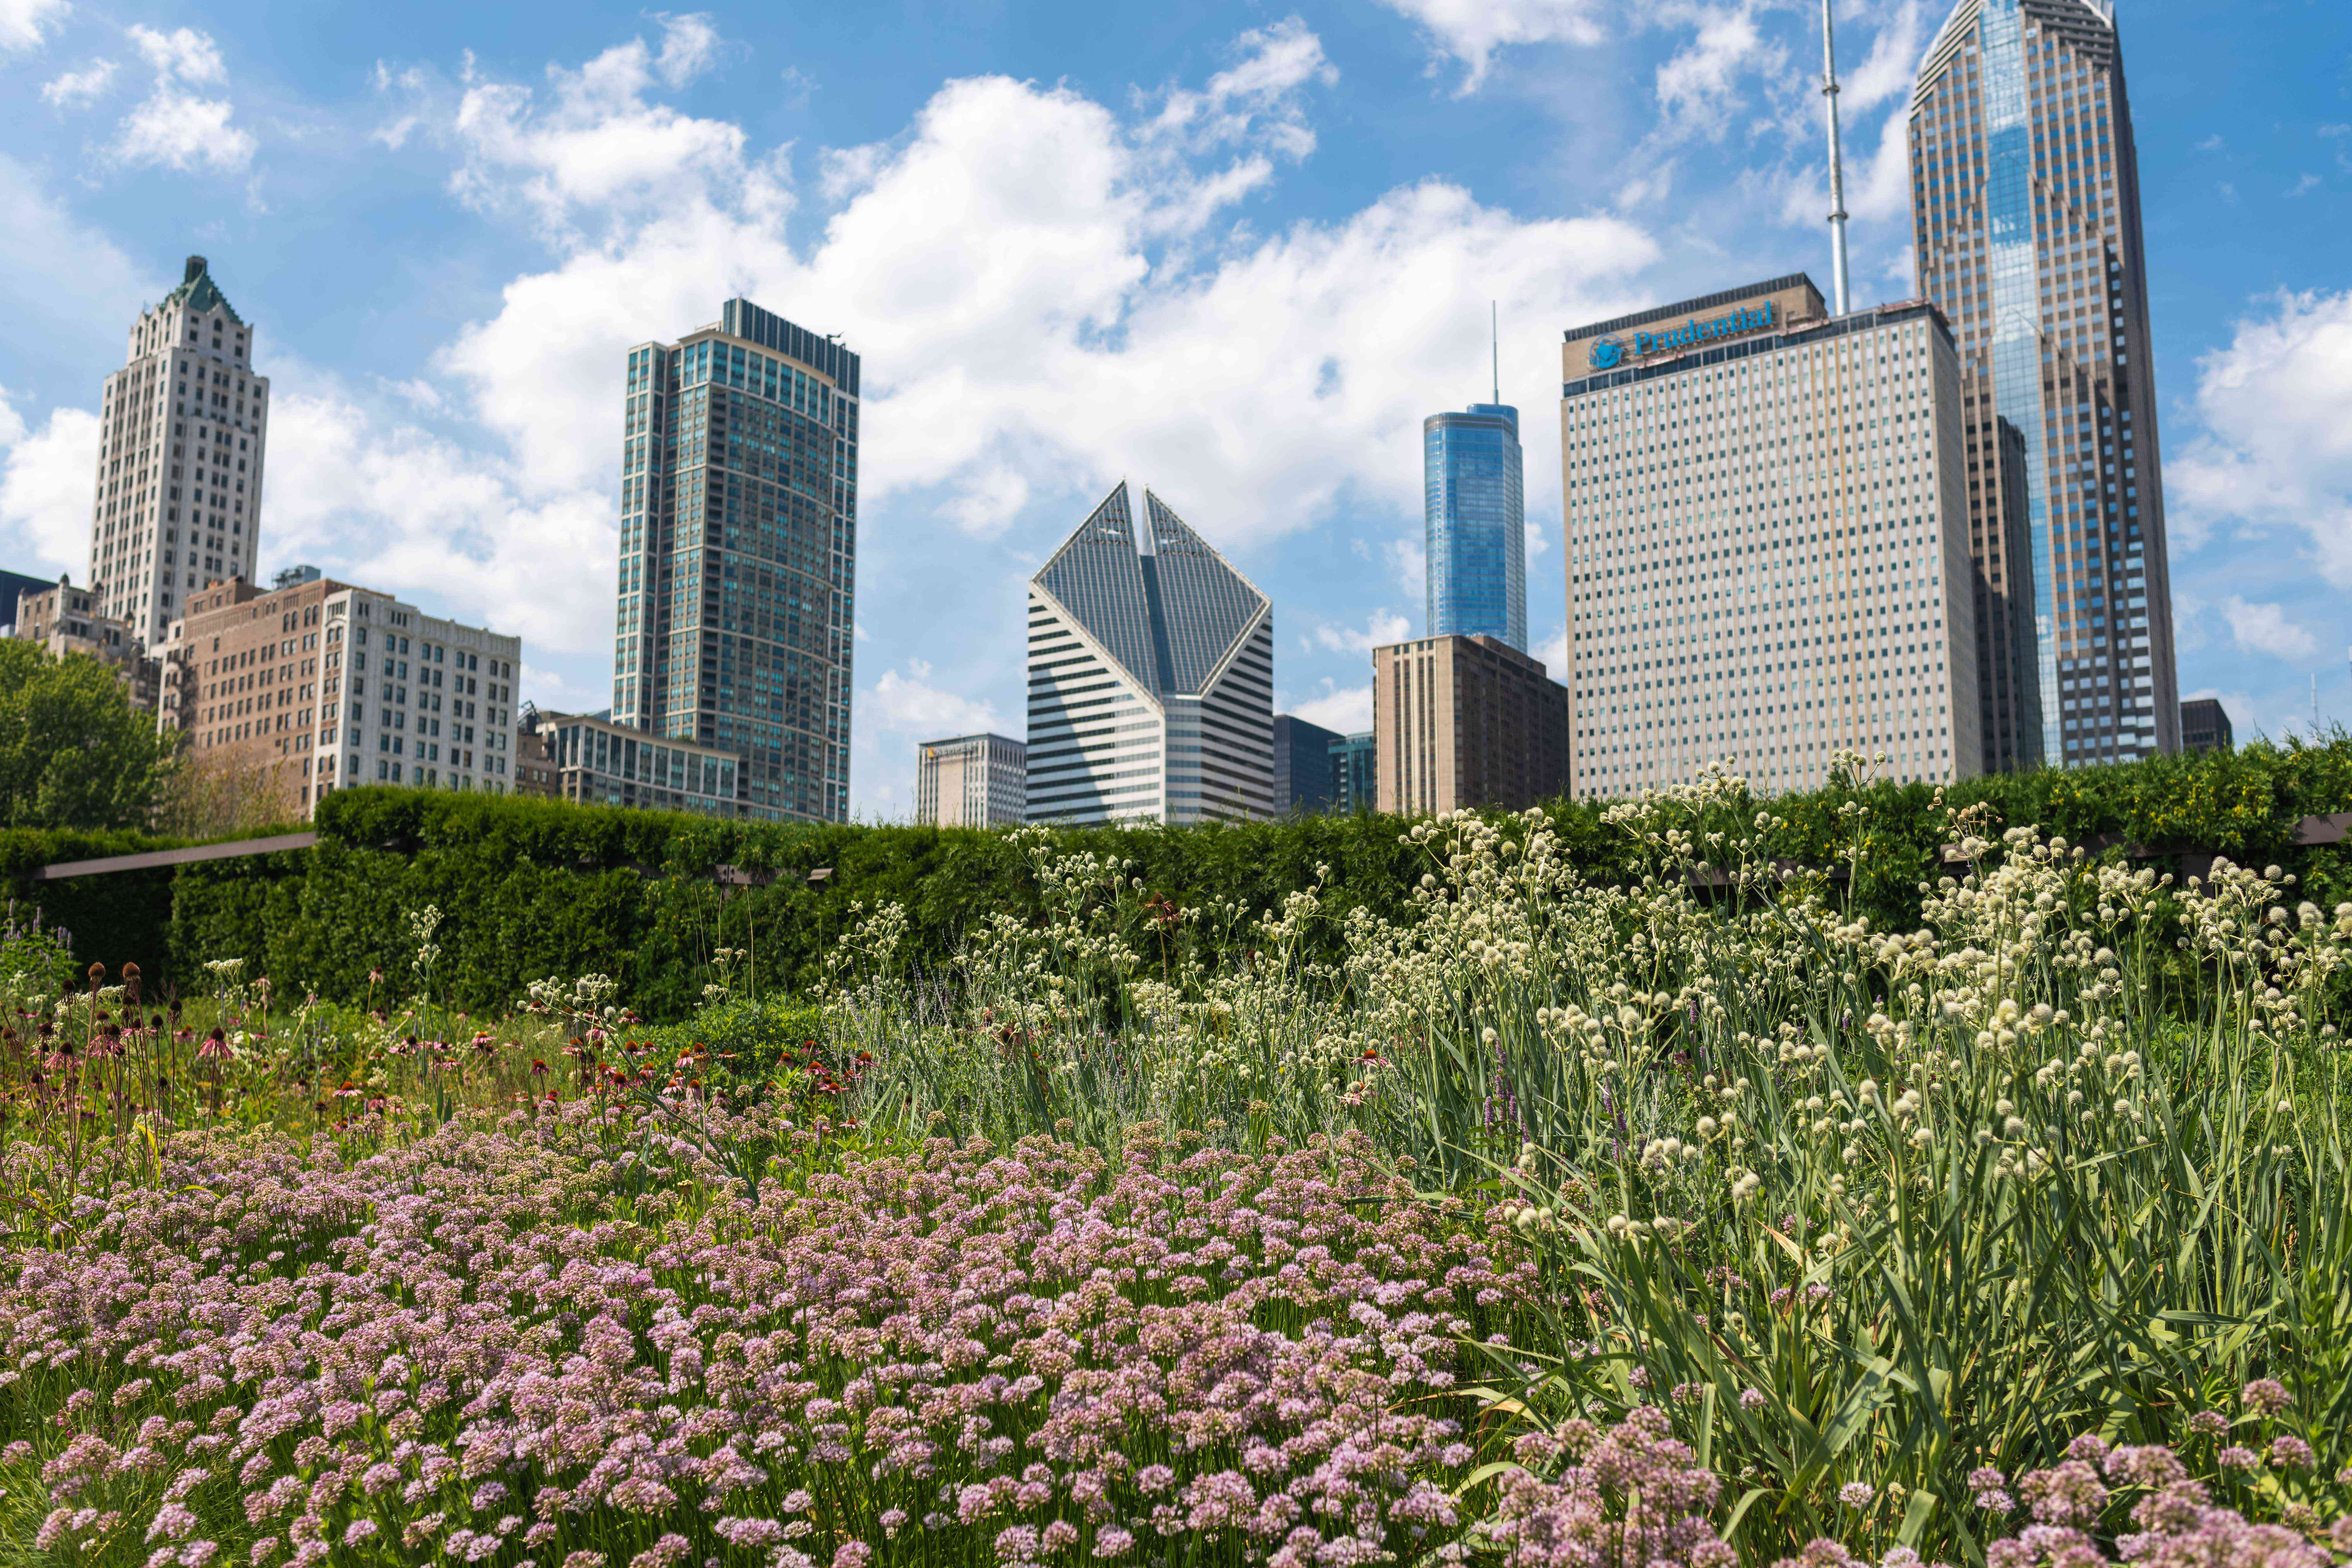 Lurie Garden with the Chicago skyline in the background